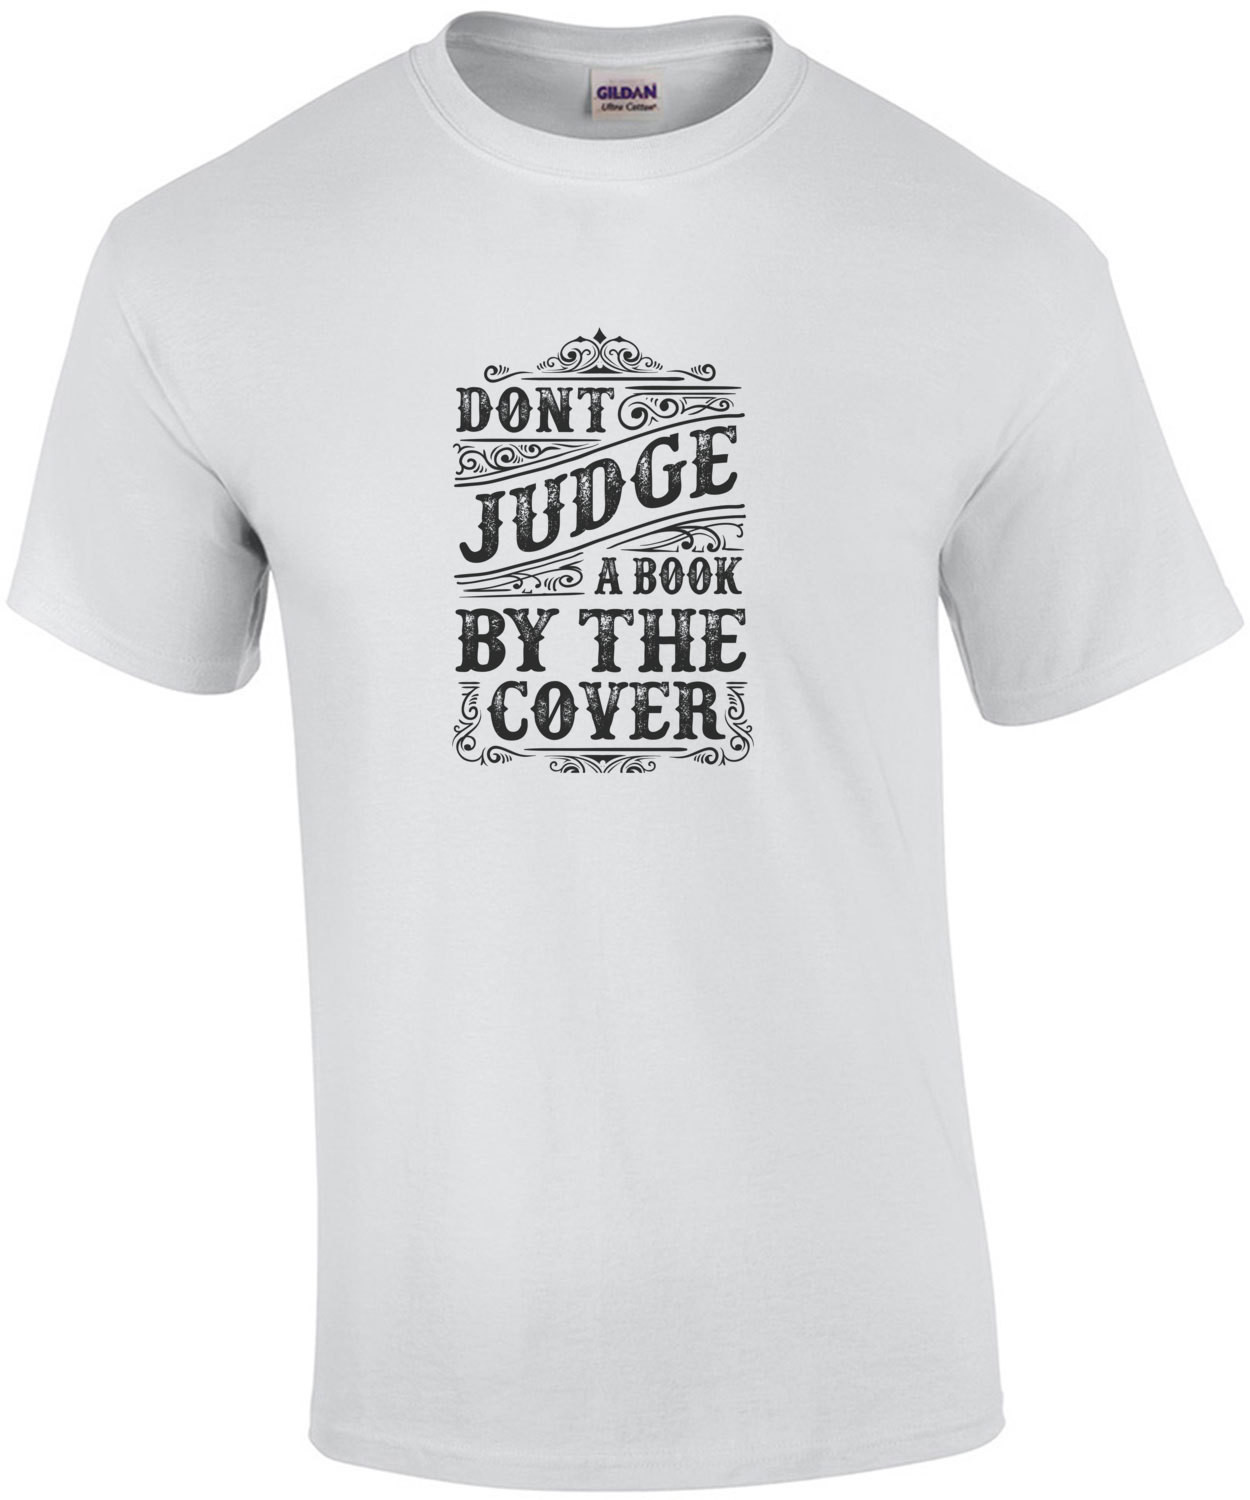 Dont Judge A Book By The Cover Motivational T-Shirt